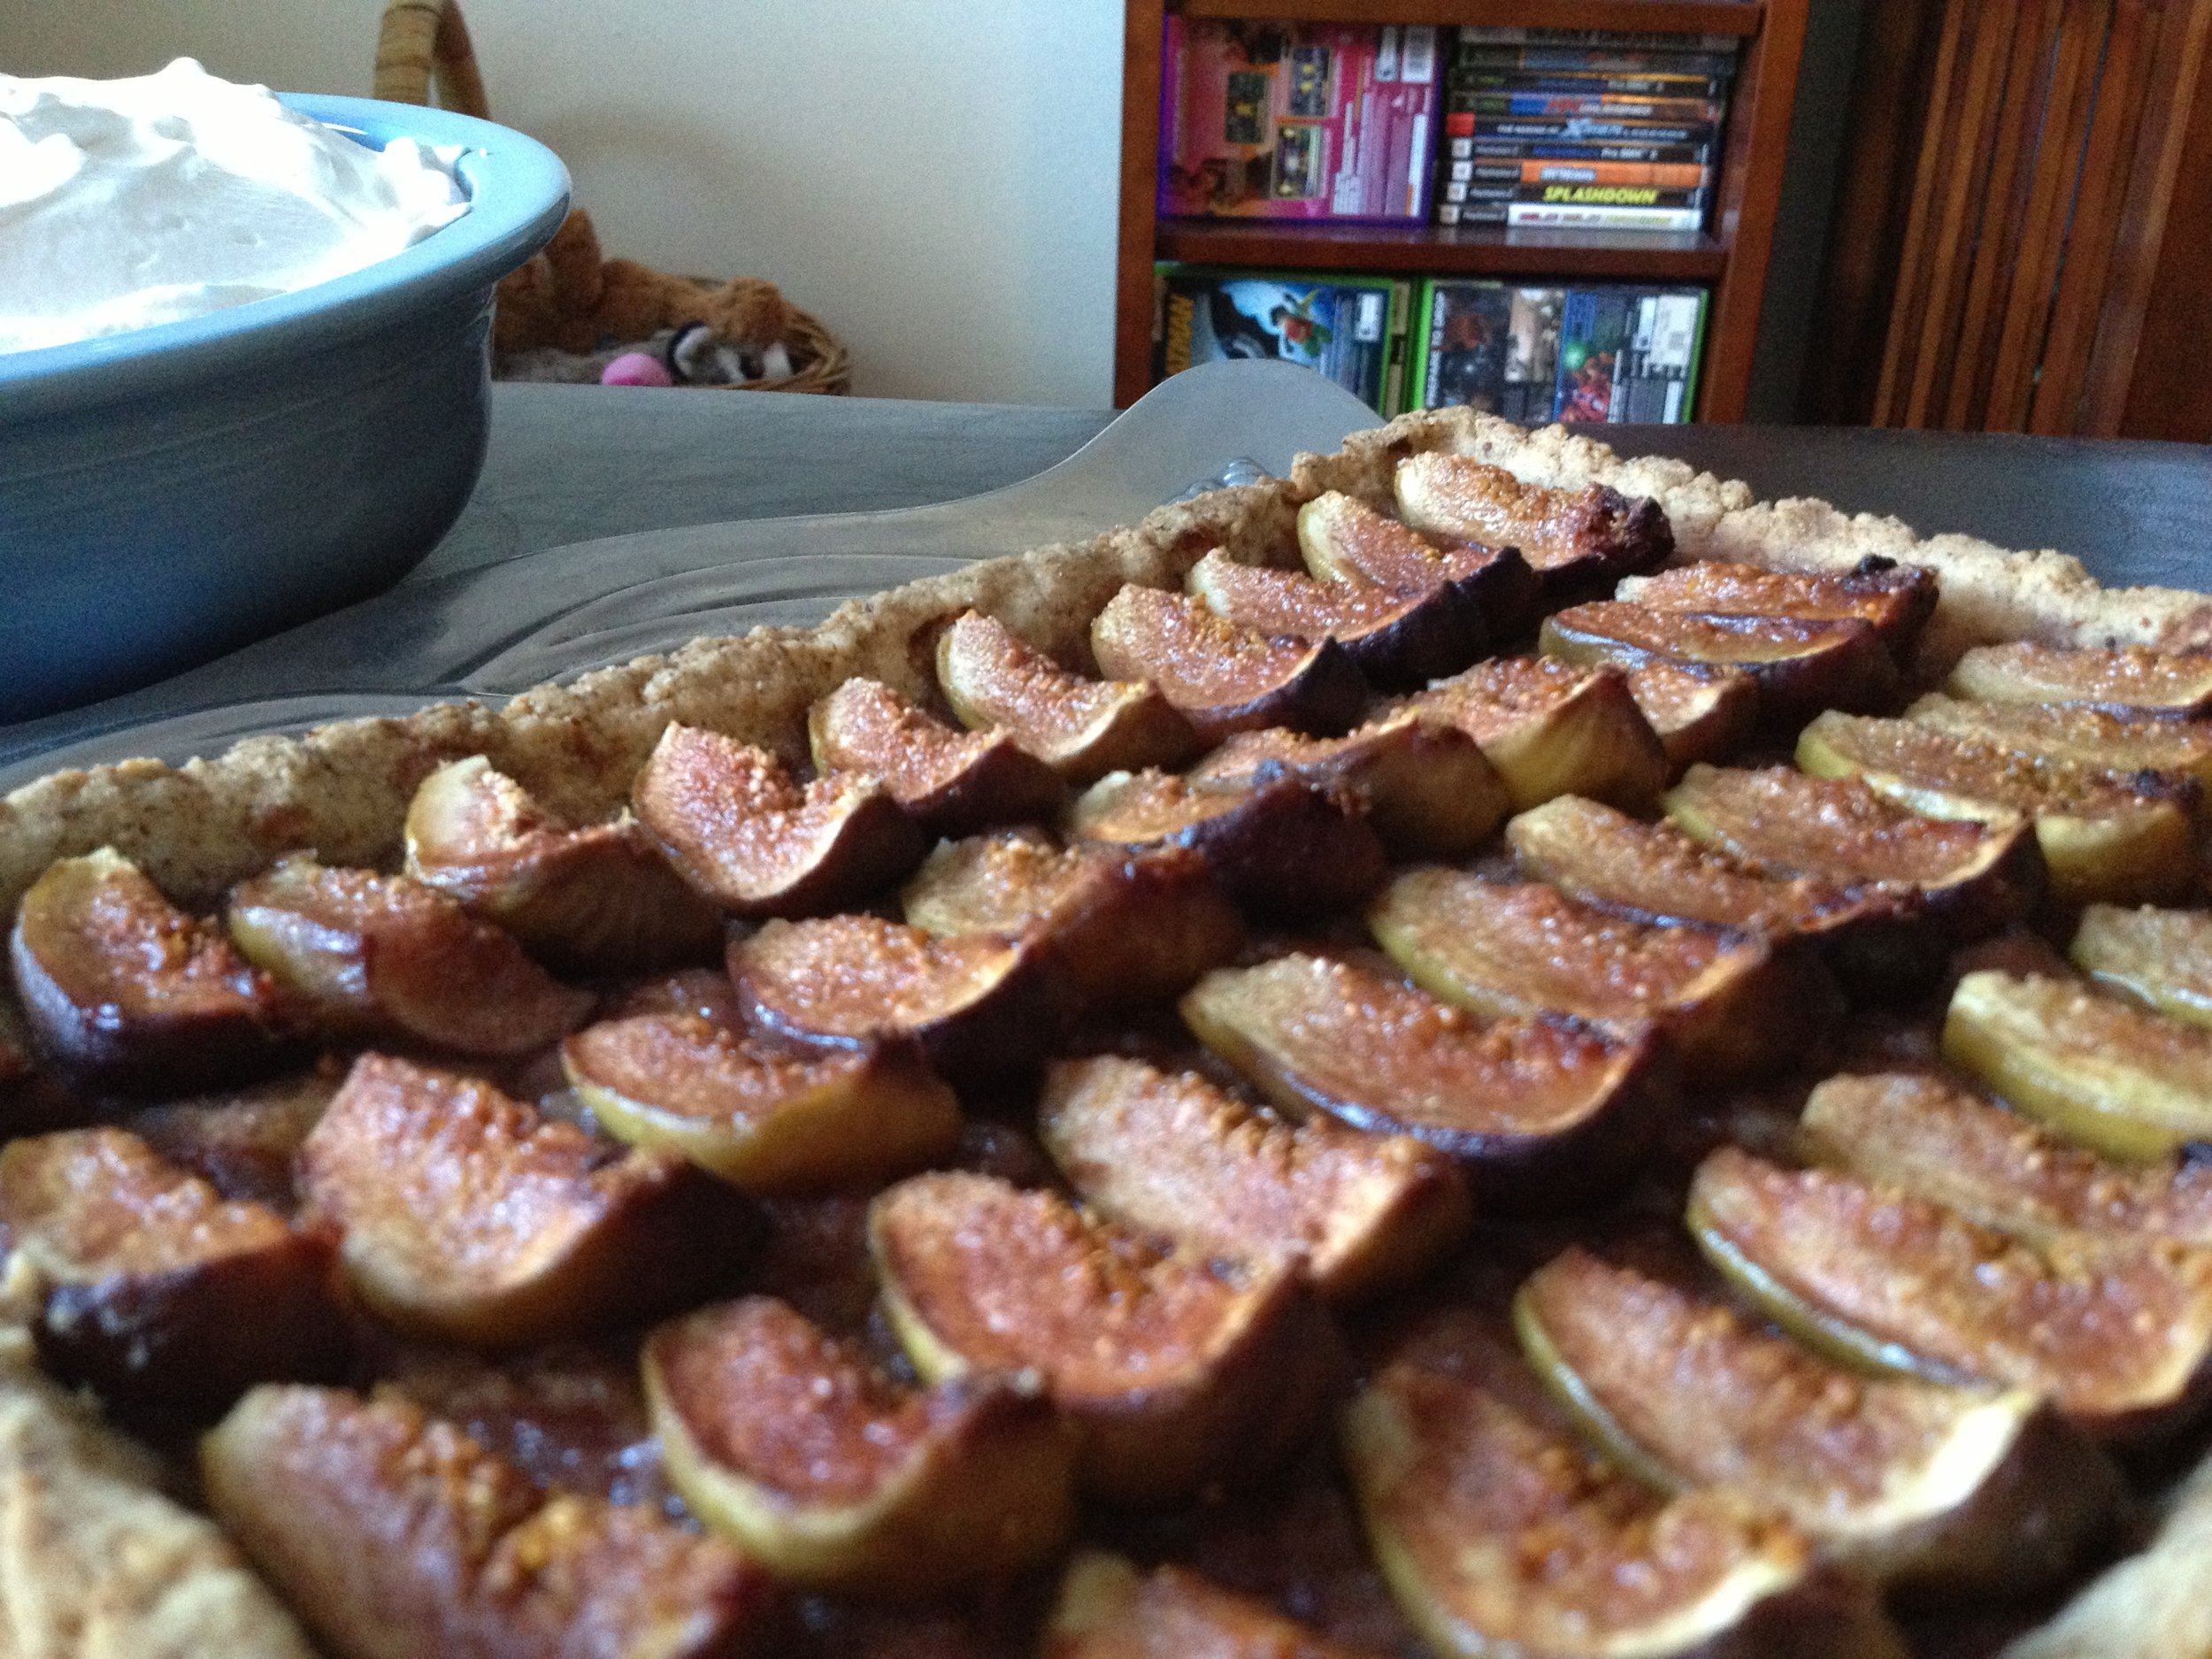 Roasted Fig Tart with a Pecan Crust, along with slightly sweetened Whipped Creme